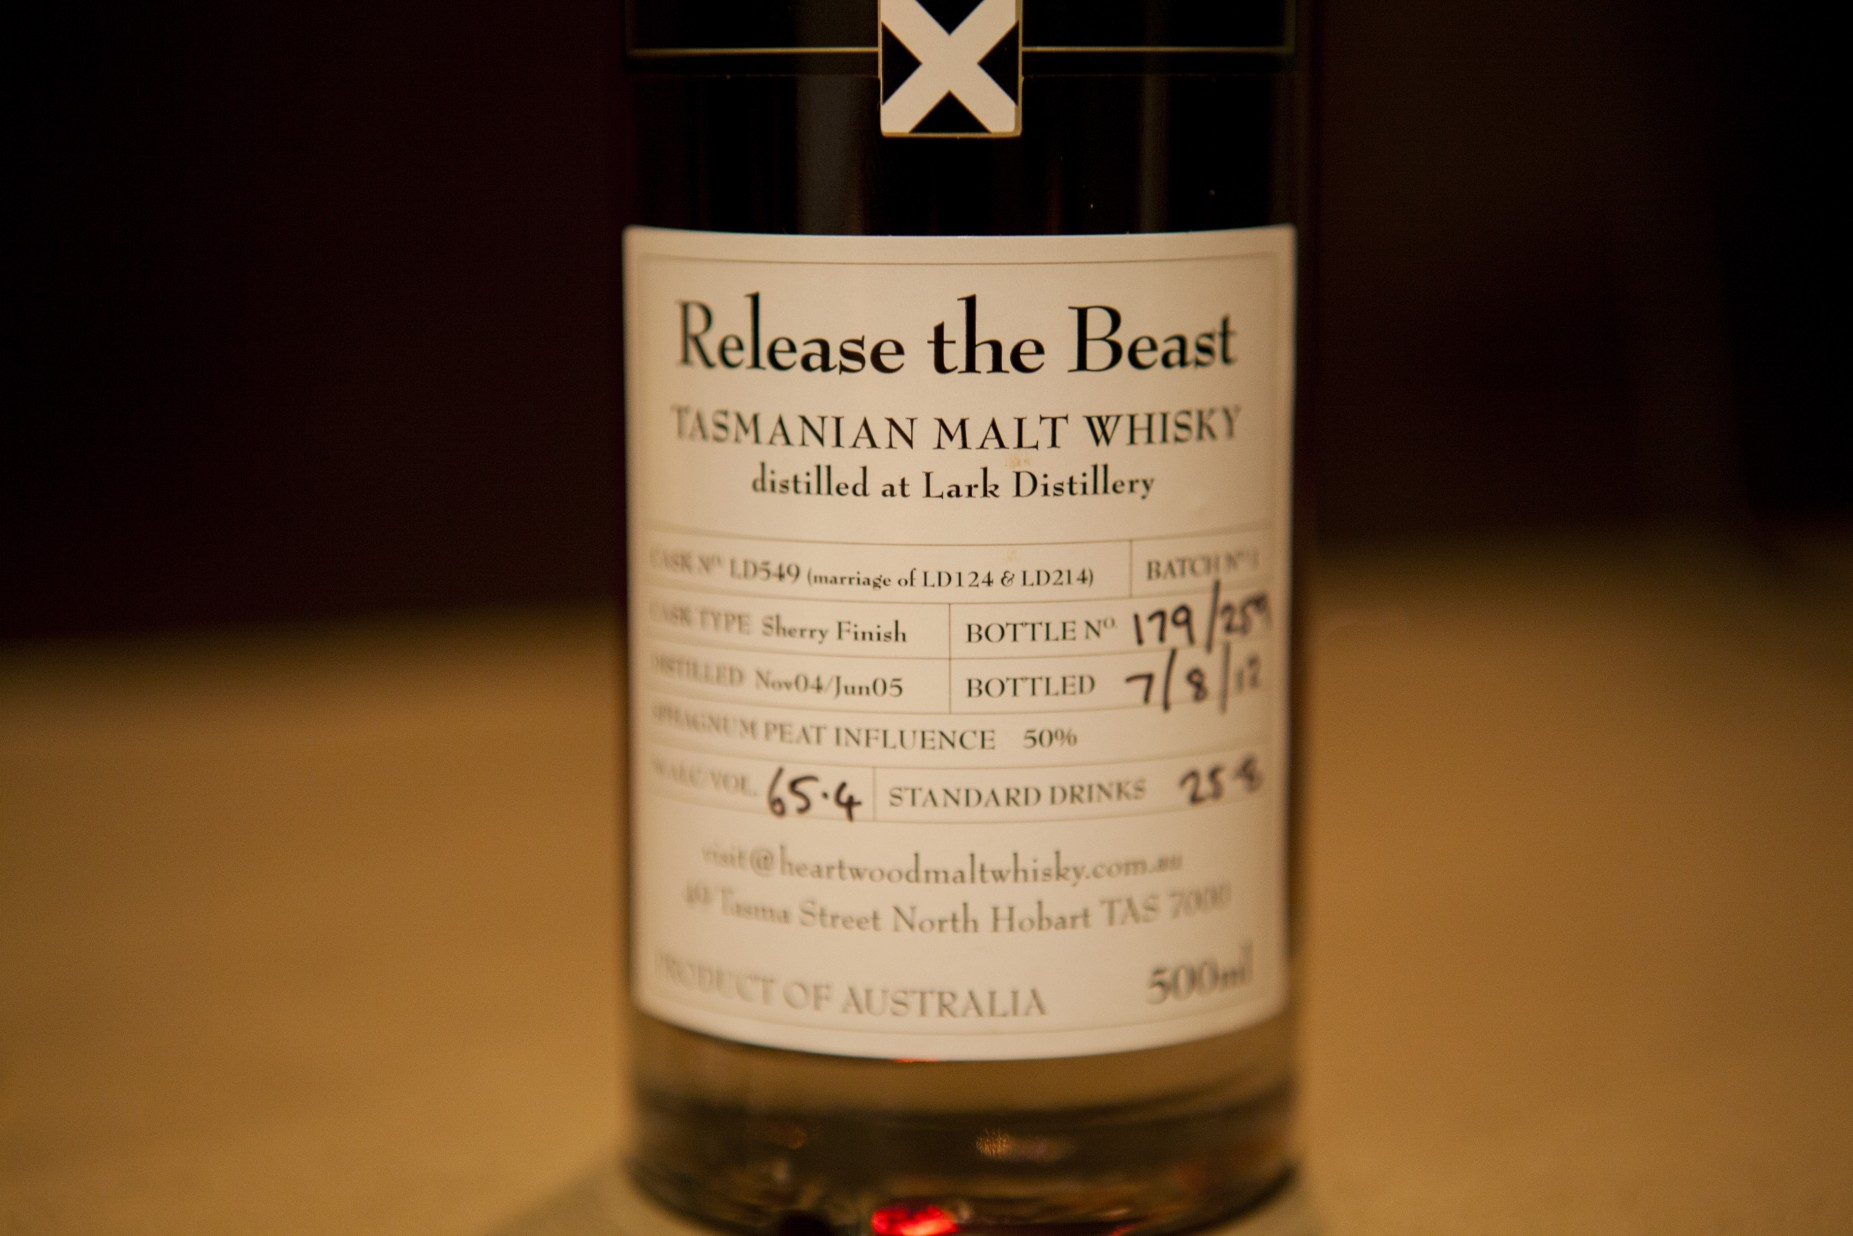 Heartwood Release the Beast Whisky Review